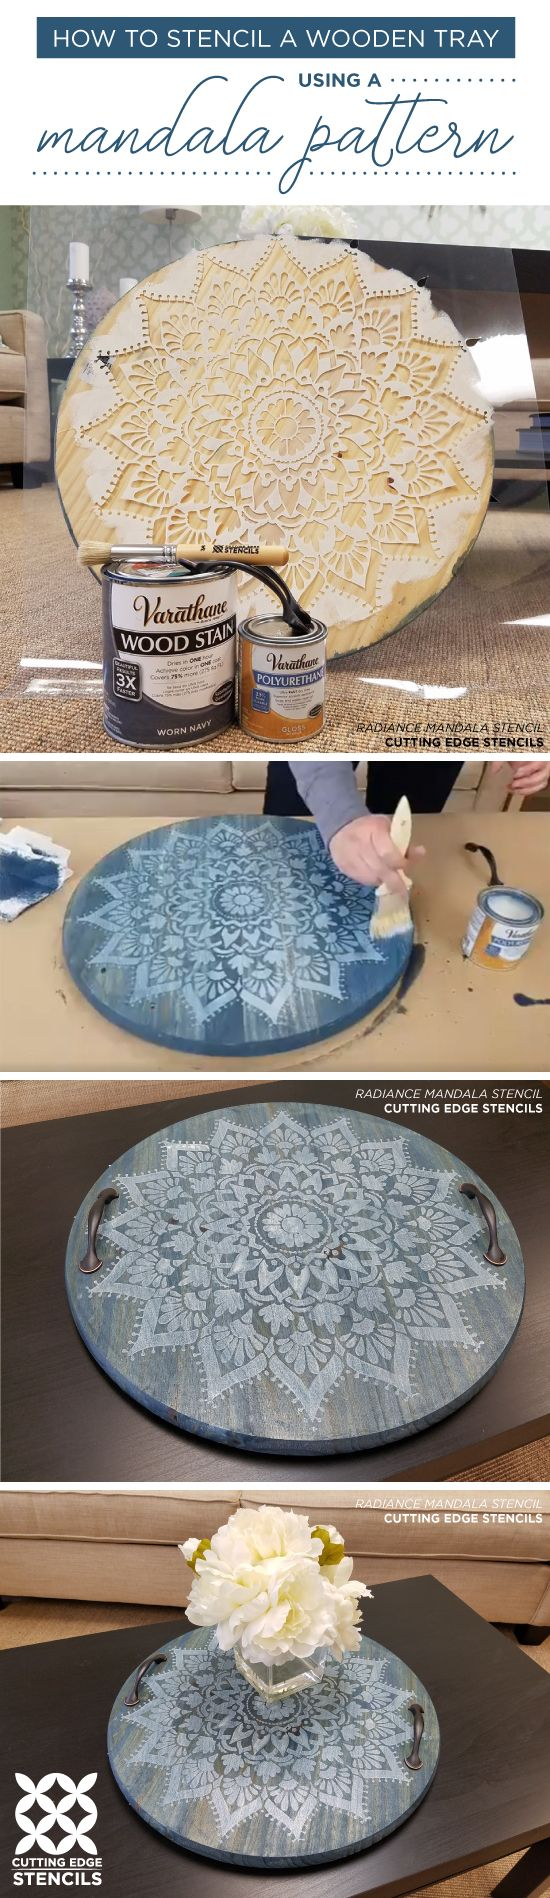 Cutting Edge Stencils shares how to craft a DIY wooden tray using the Radiance Mandala Stencil. http://www.cuttingedgestencils.com/prosperity-mandala-stencil-yoga-mandala-stencils-designs.html